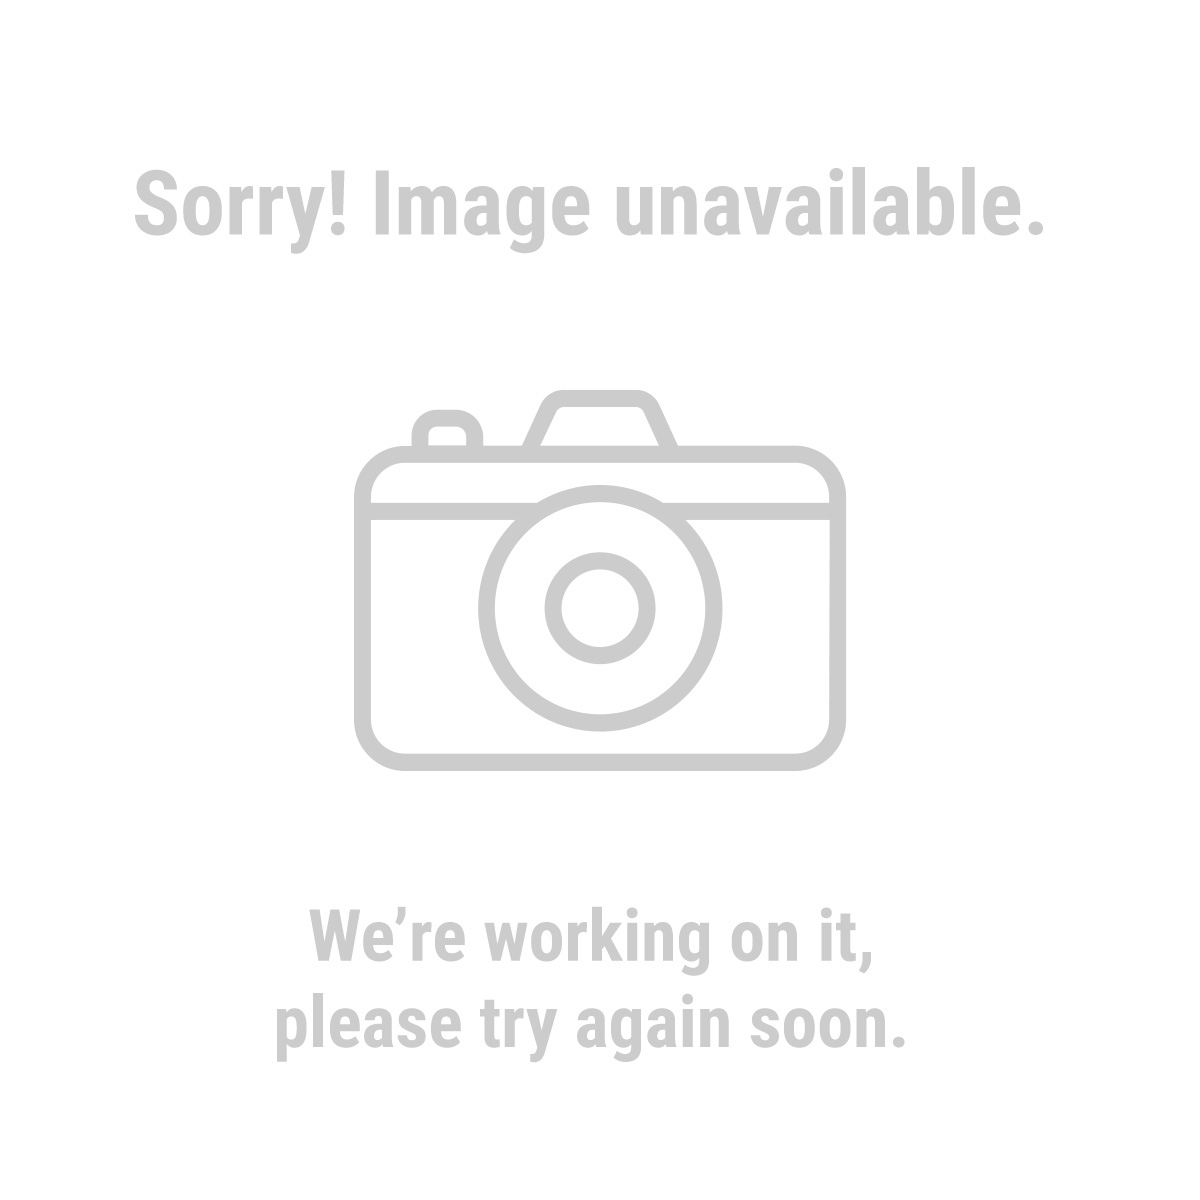 U.S. General® Pro 62662 56 in. 8 Drawer Glossy Red Roller Cabinet Top Chest